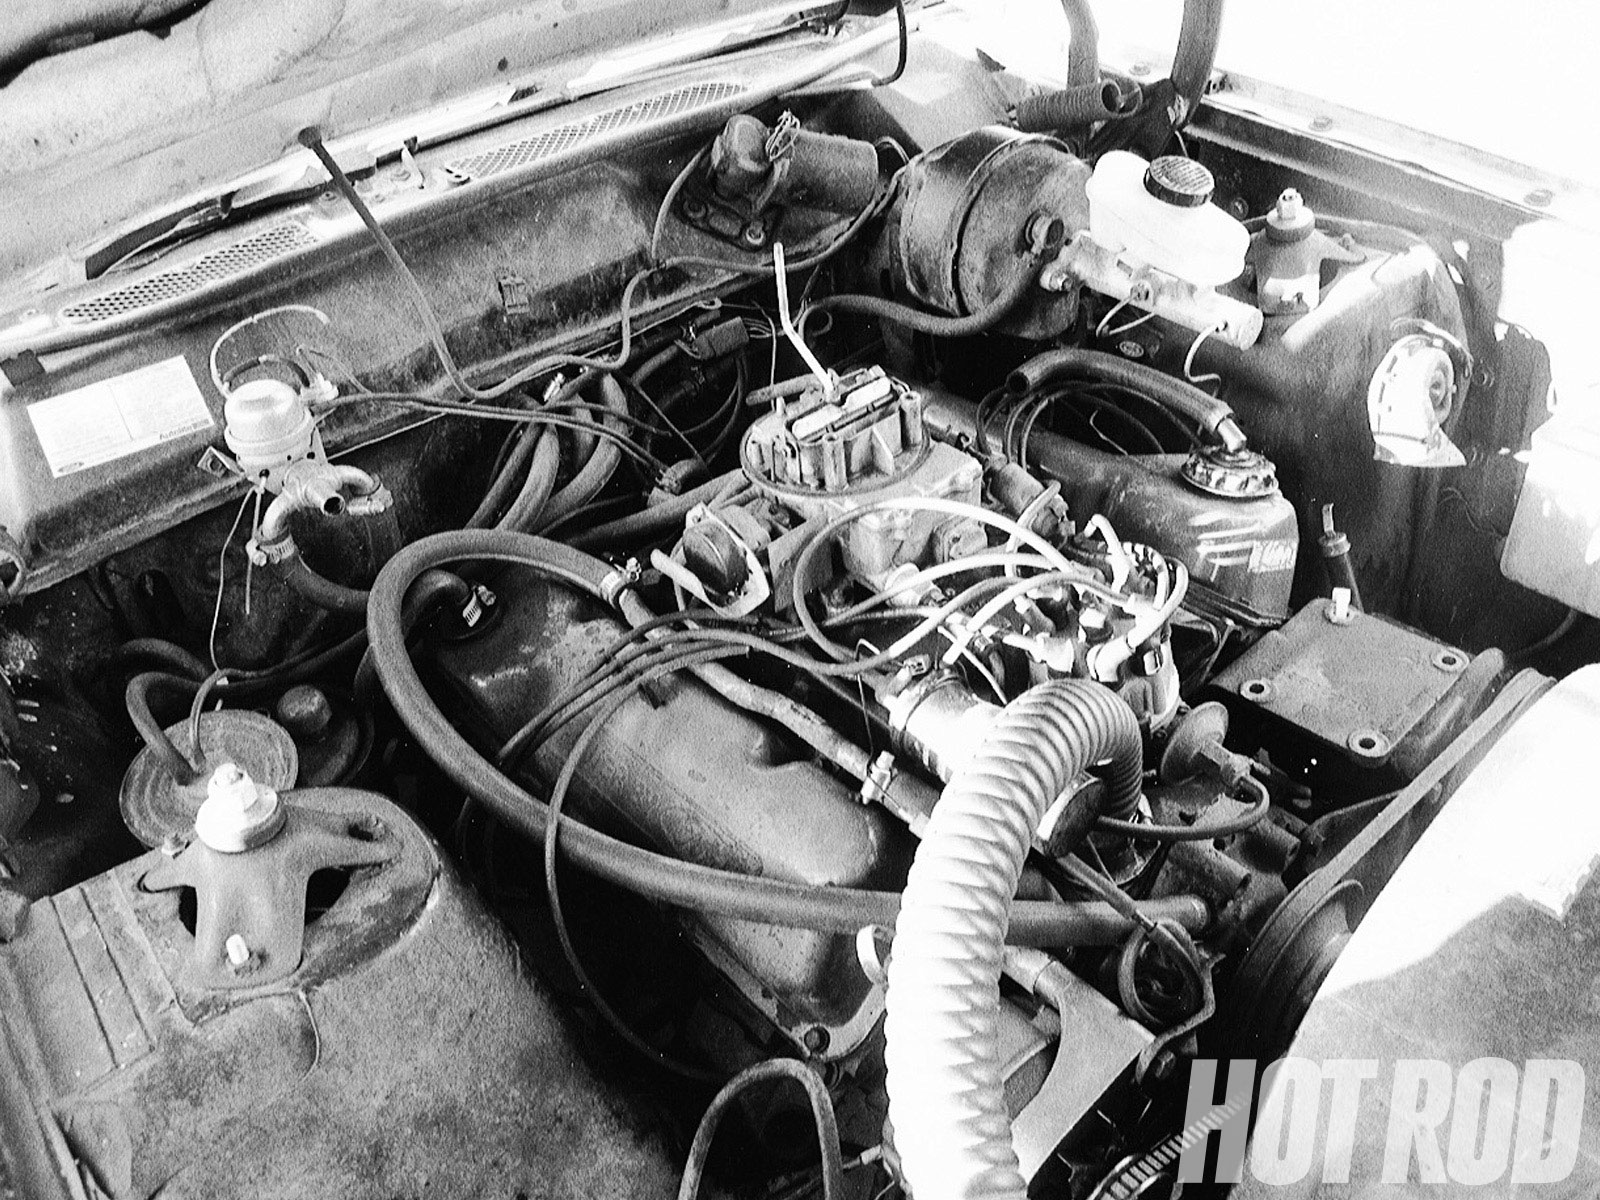 351 Cleveland Engine Wiring Diagram Get Free Image About Wiring